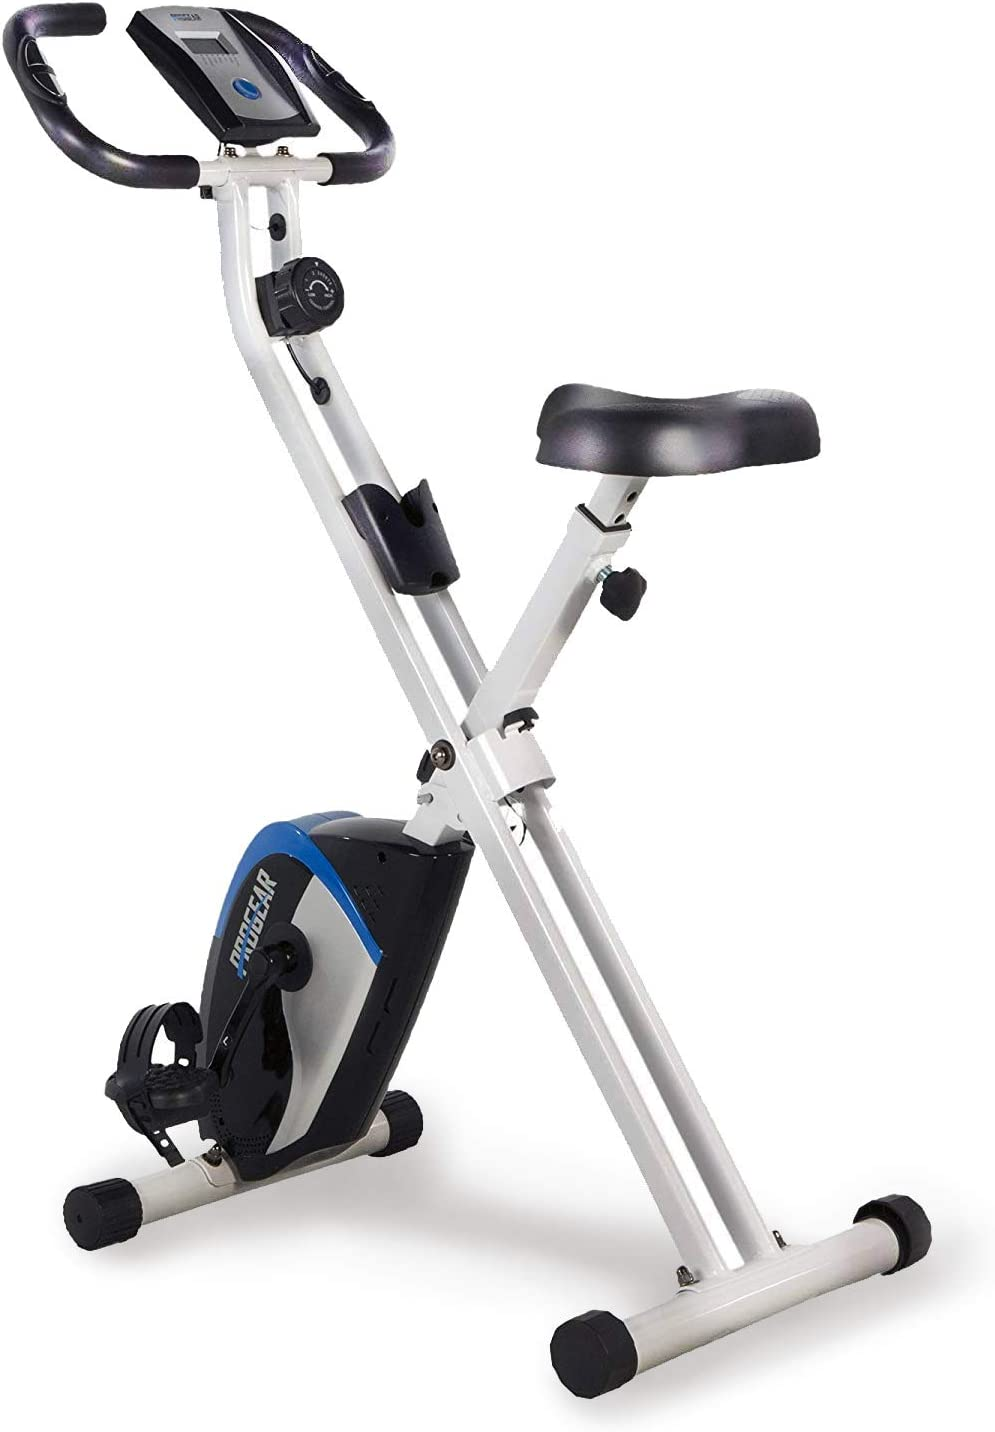 Pro-Gear 225 foldable upright bike